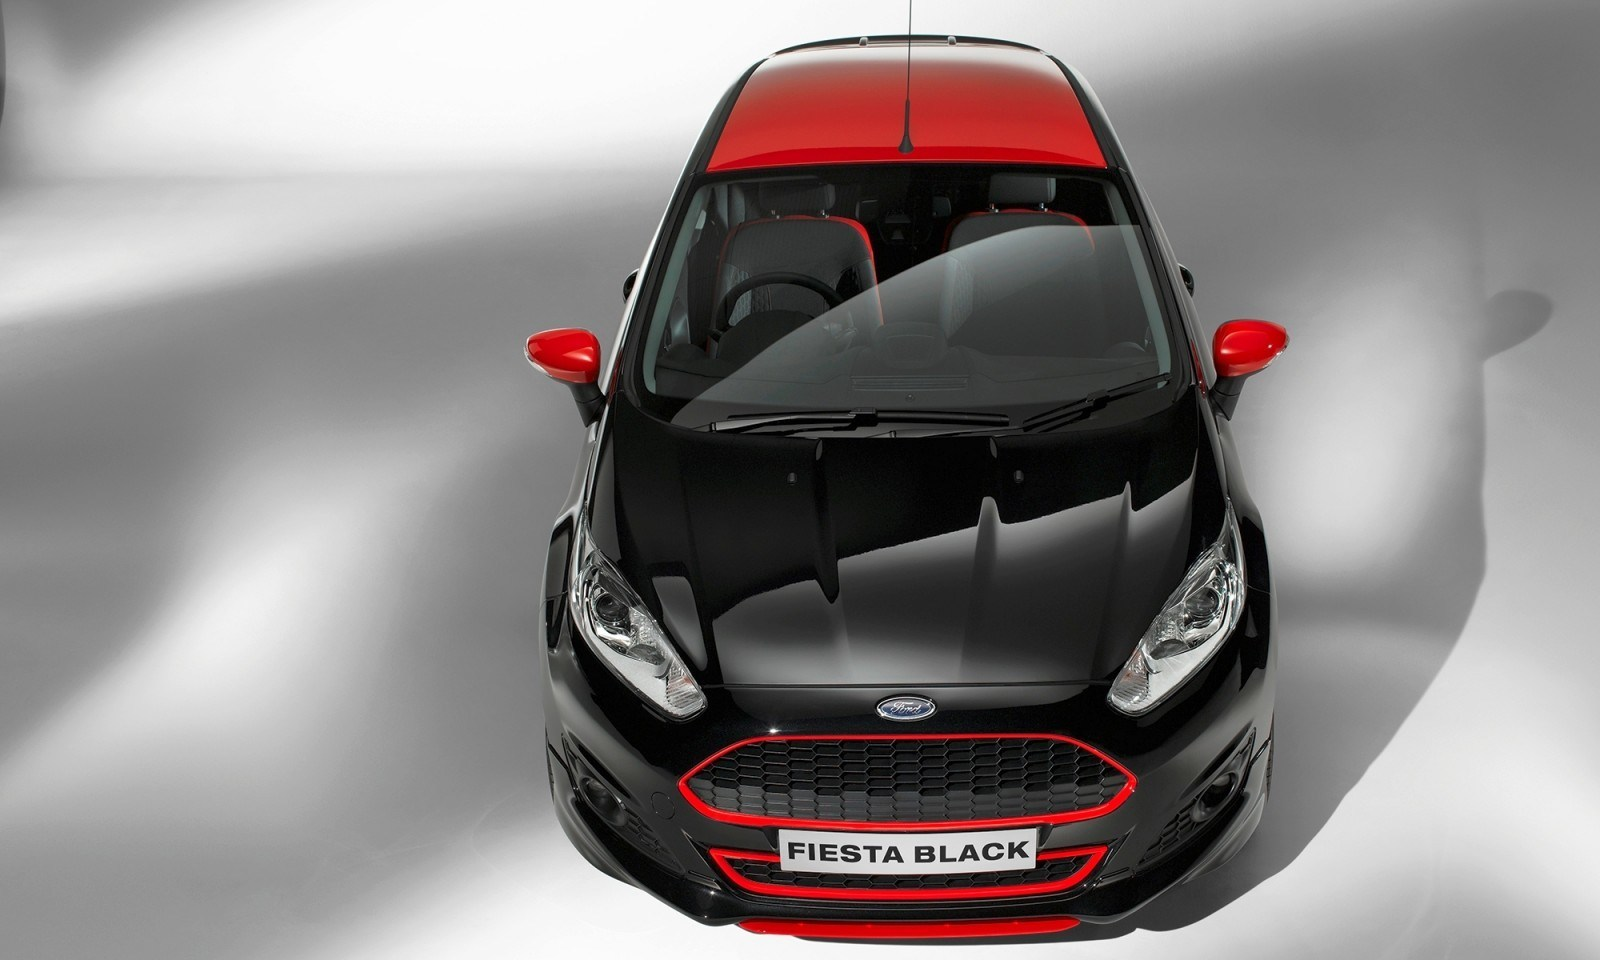 2014 Ford Fiesta Red Edition and Fiesta Black Edition Announced for UK 15